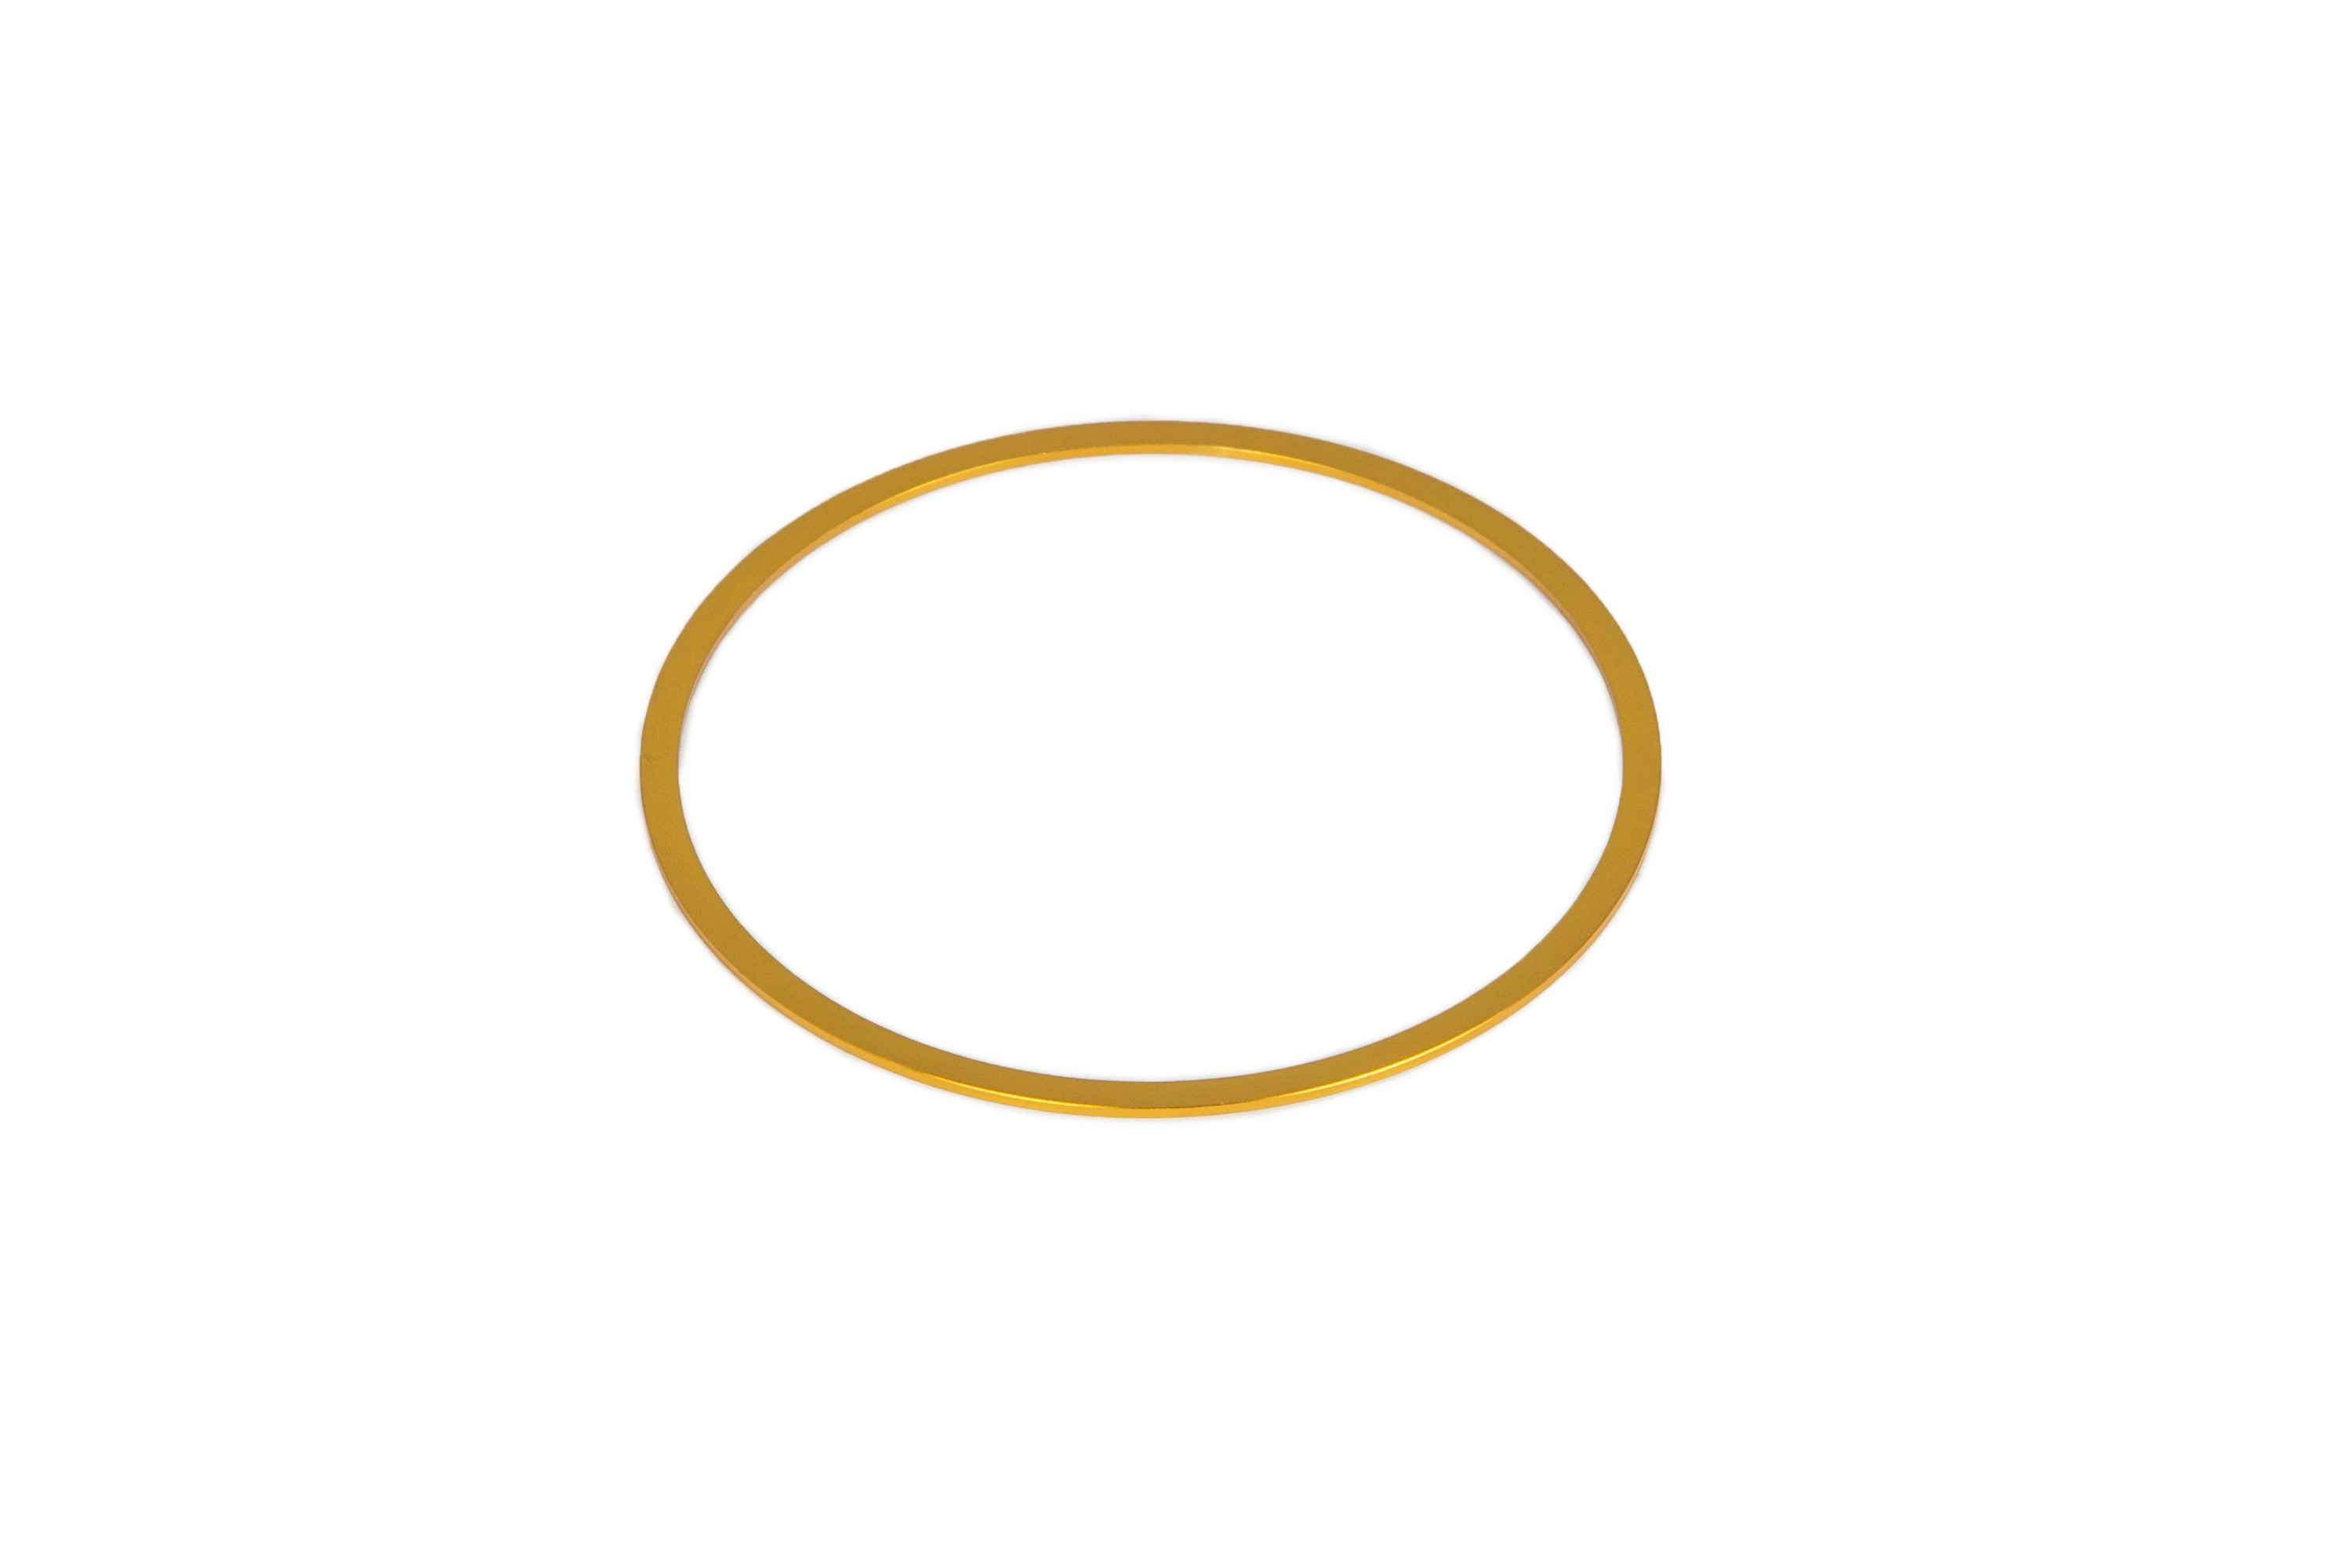 M68 spacer ring 1mm (gold)